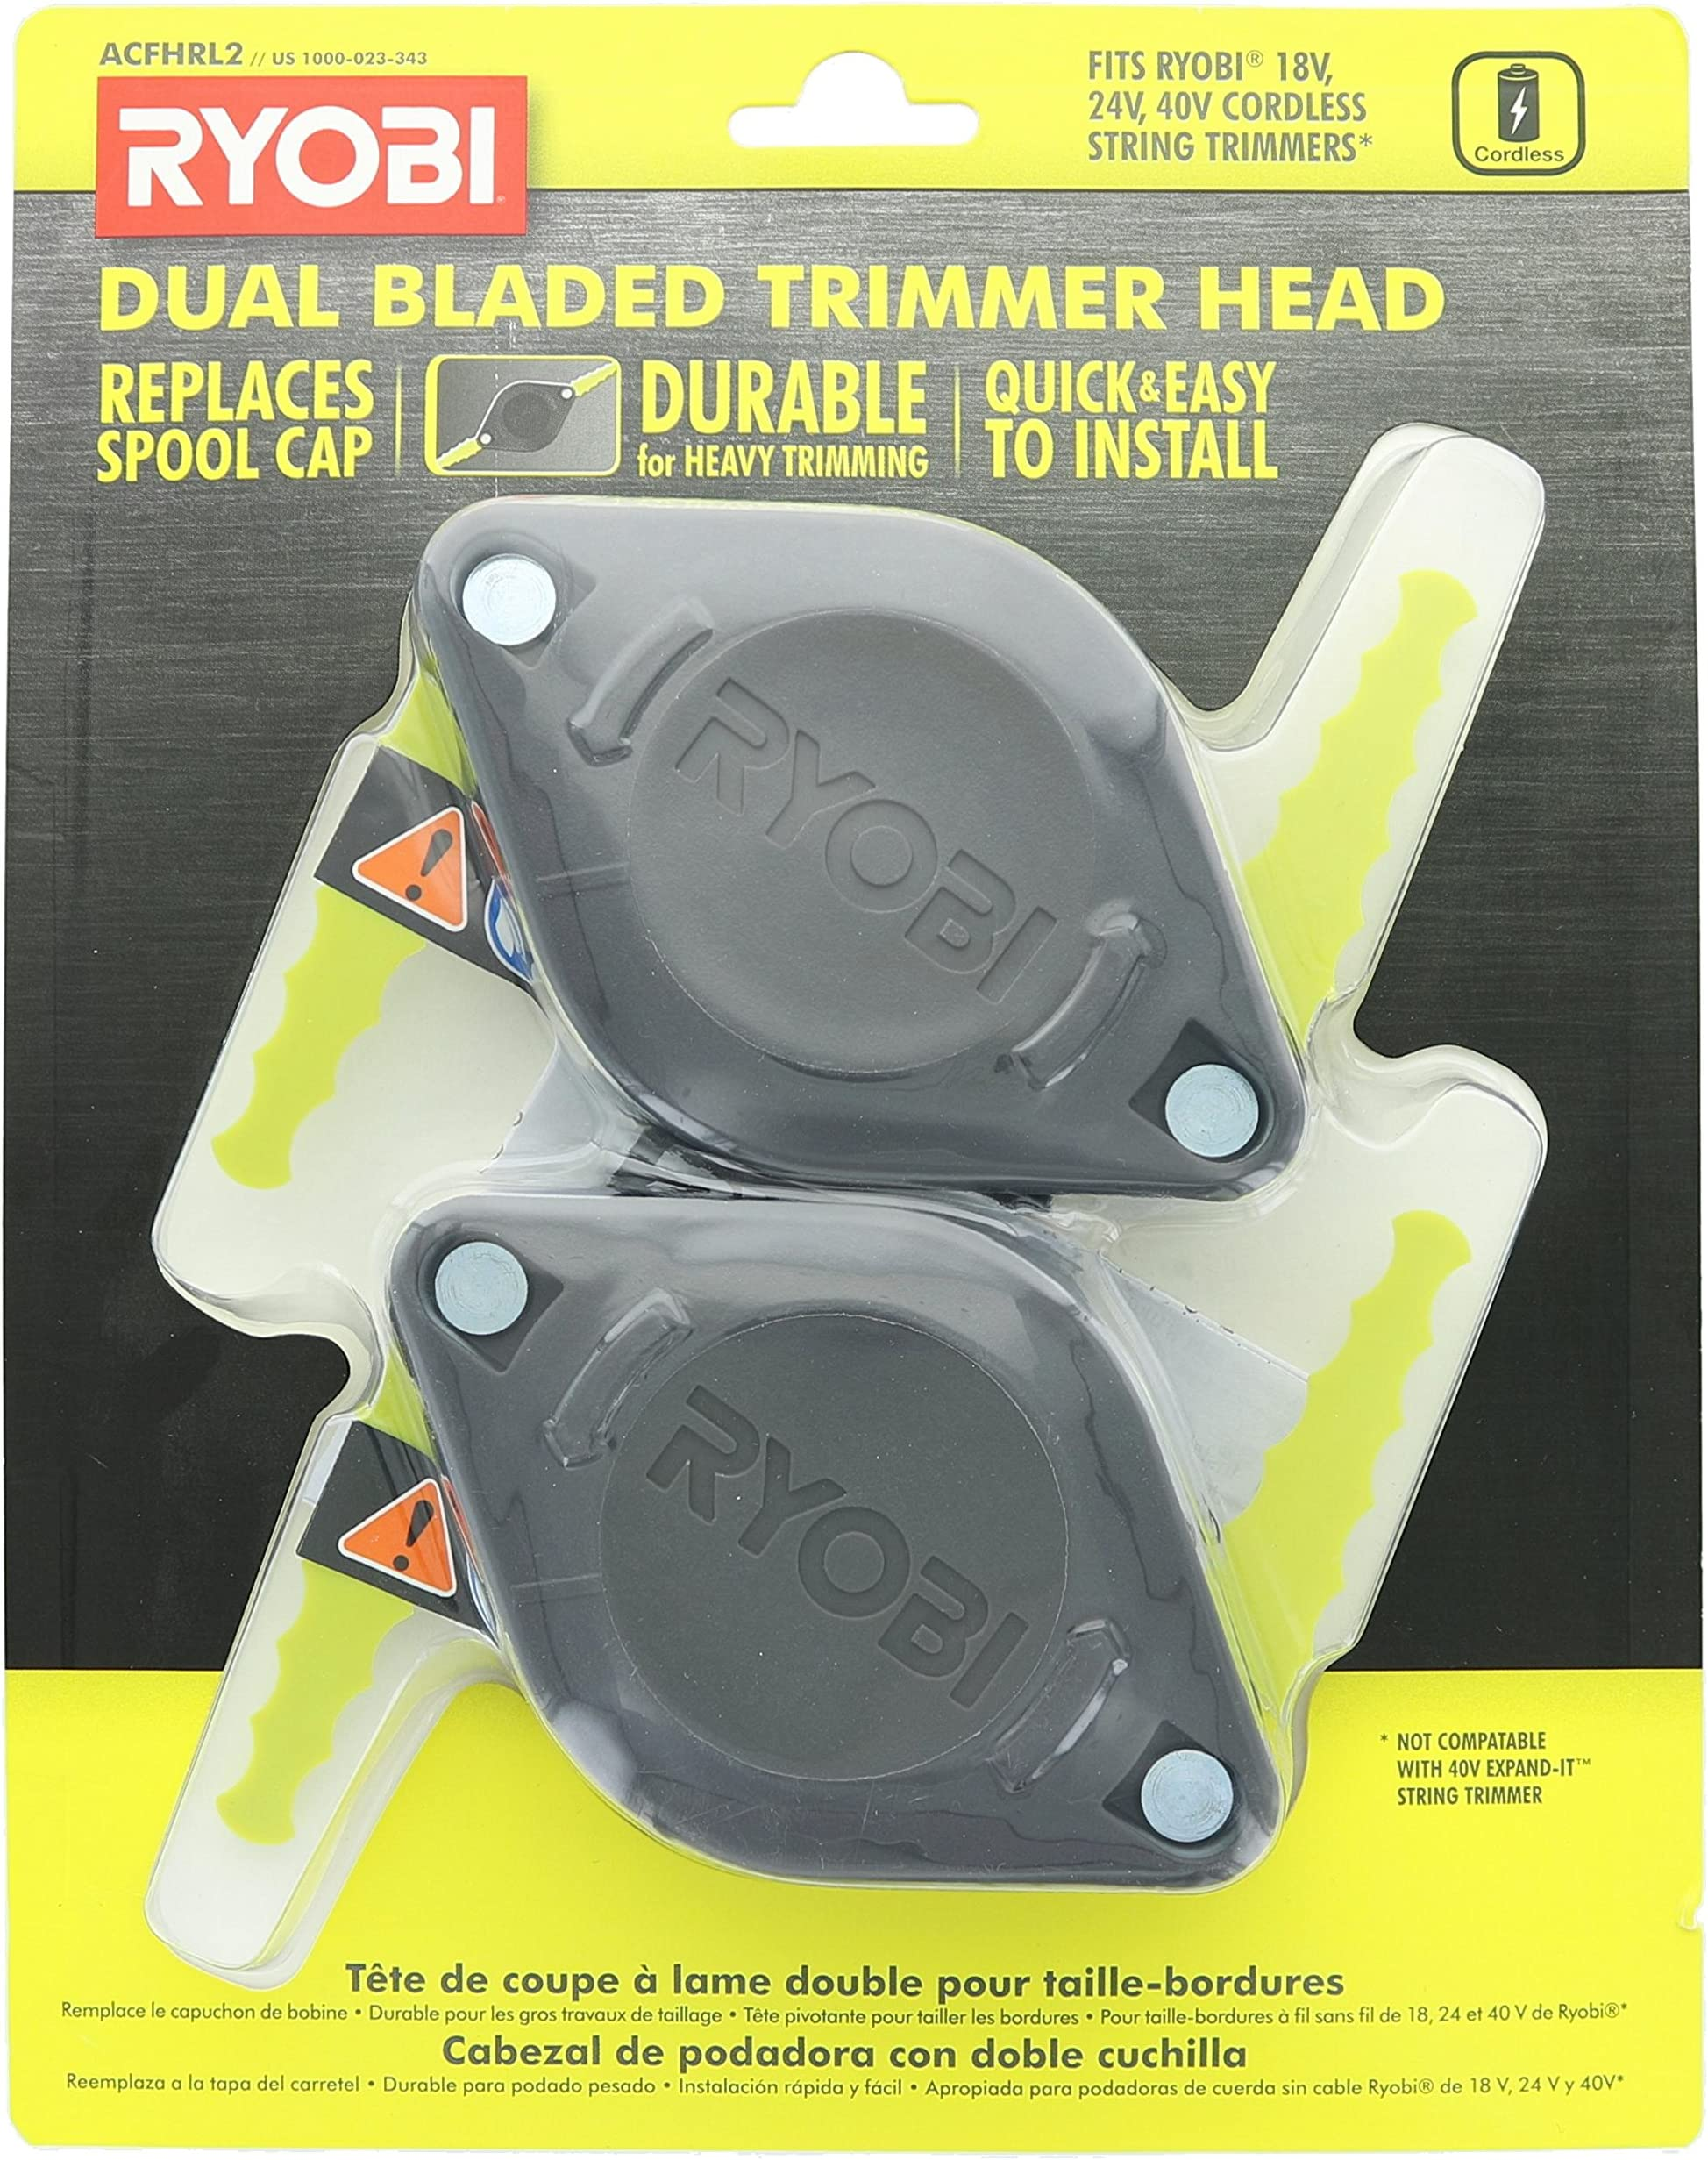 91bLlHu2xYL._AC_SR201266_ string trimmer accessories amazon com Ryobi Weed Eater Attachments at readyjetset.co